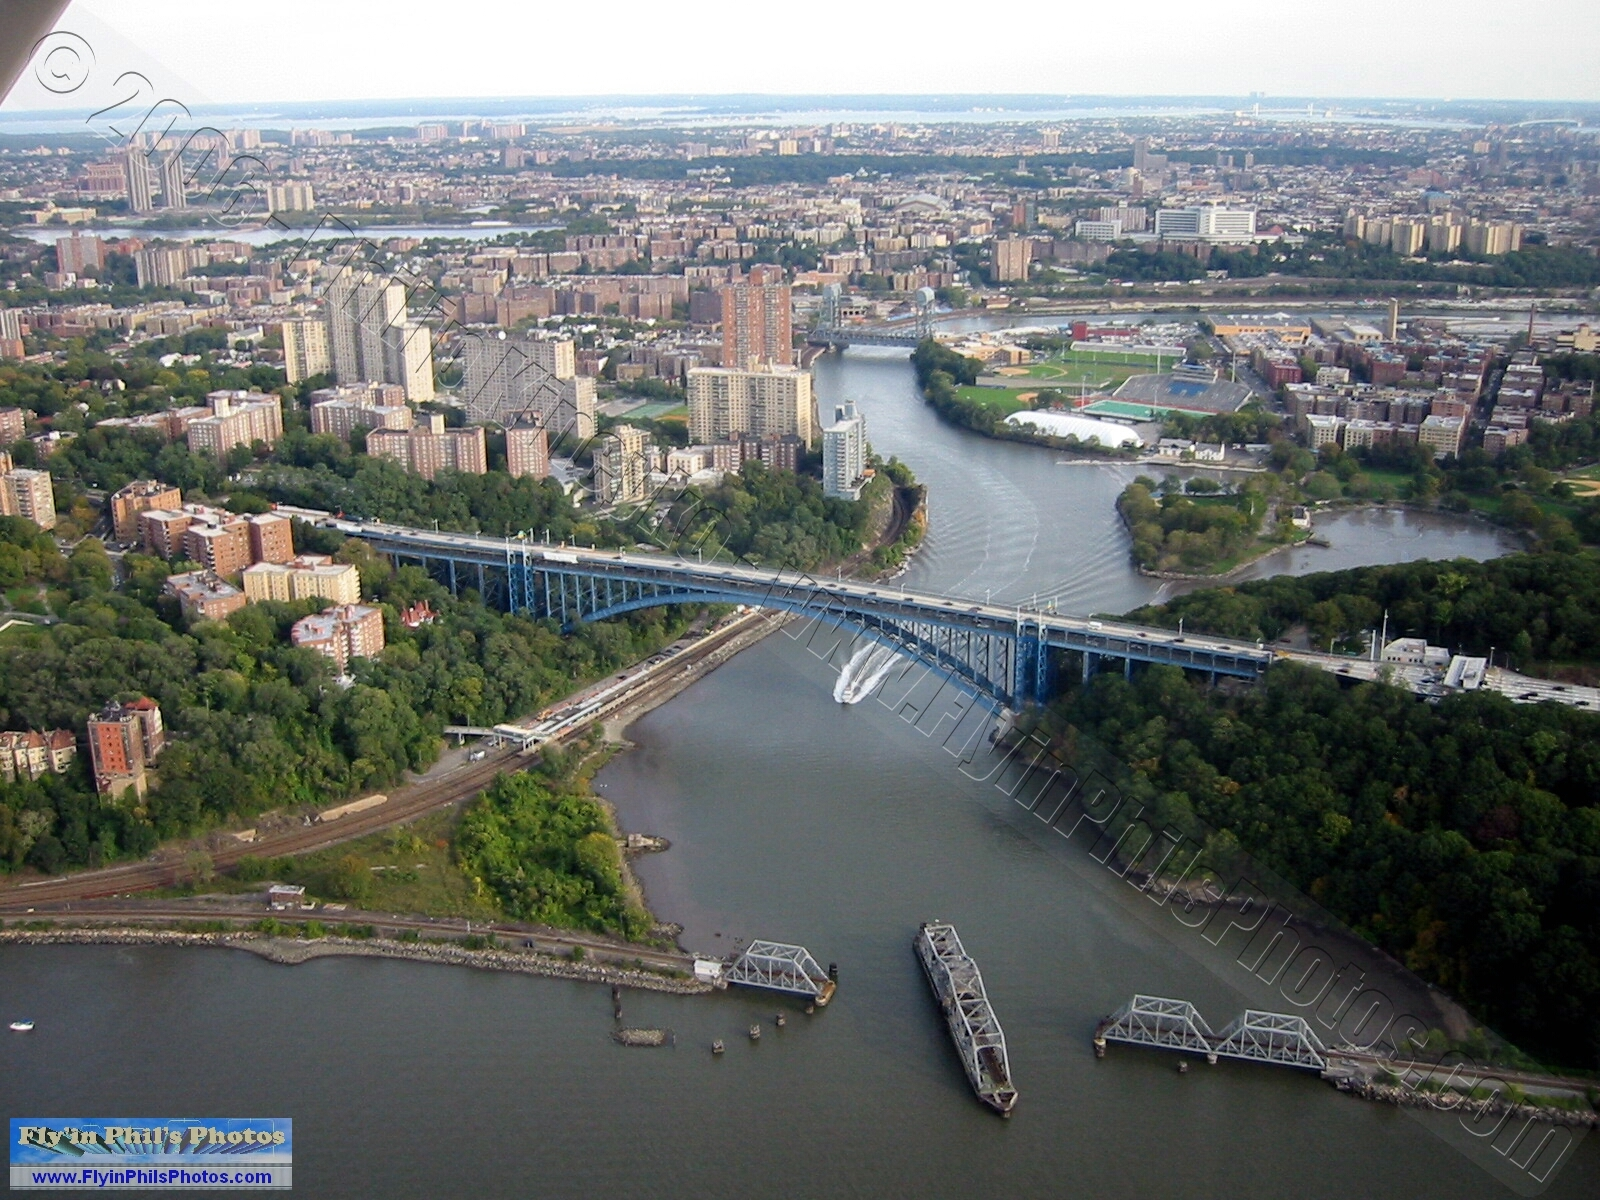 Fly In Phil S Photos New York City Aerial Photo Search Page